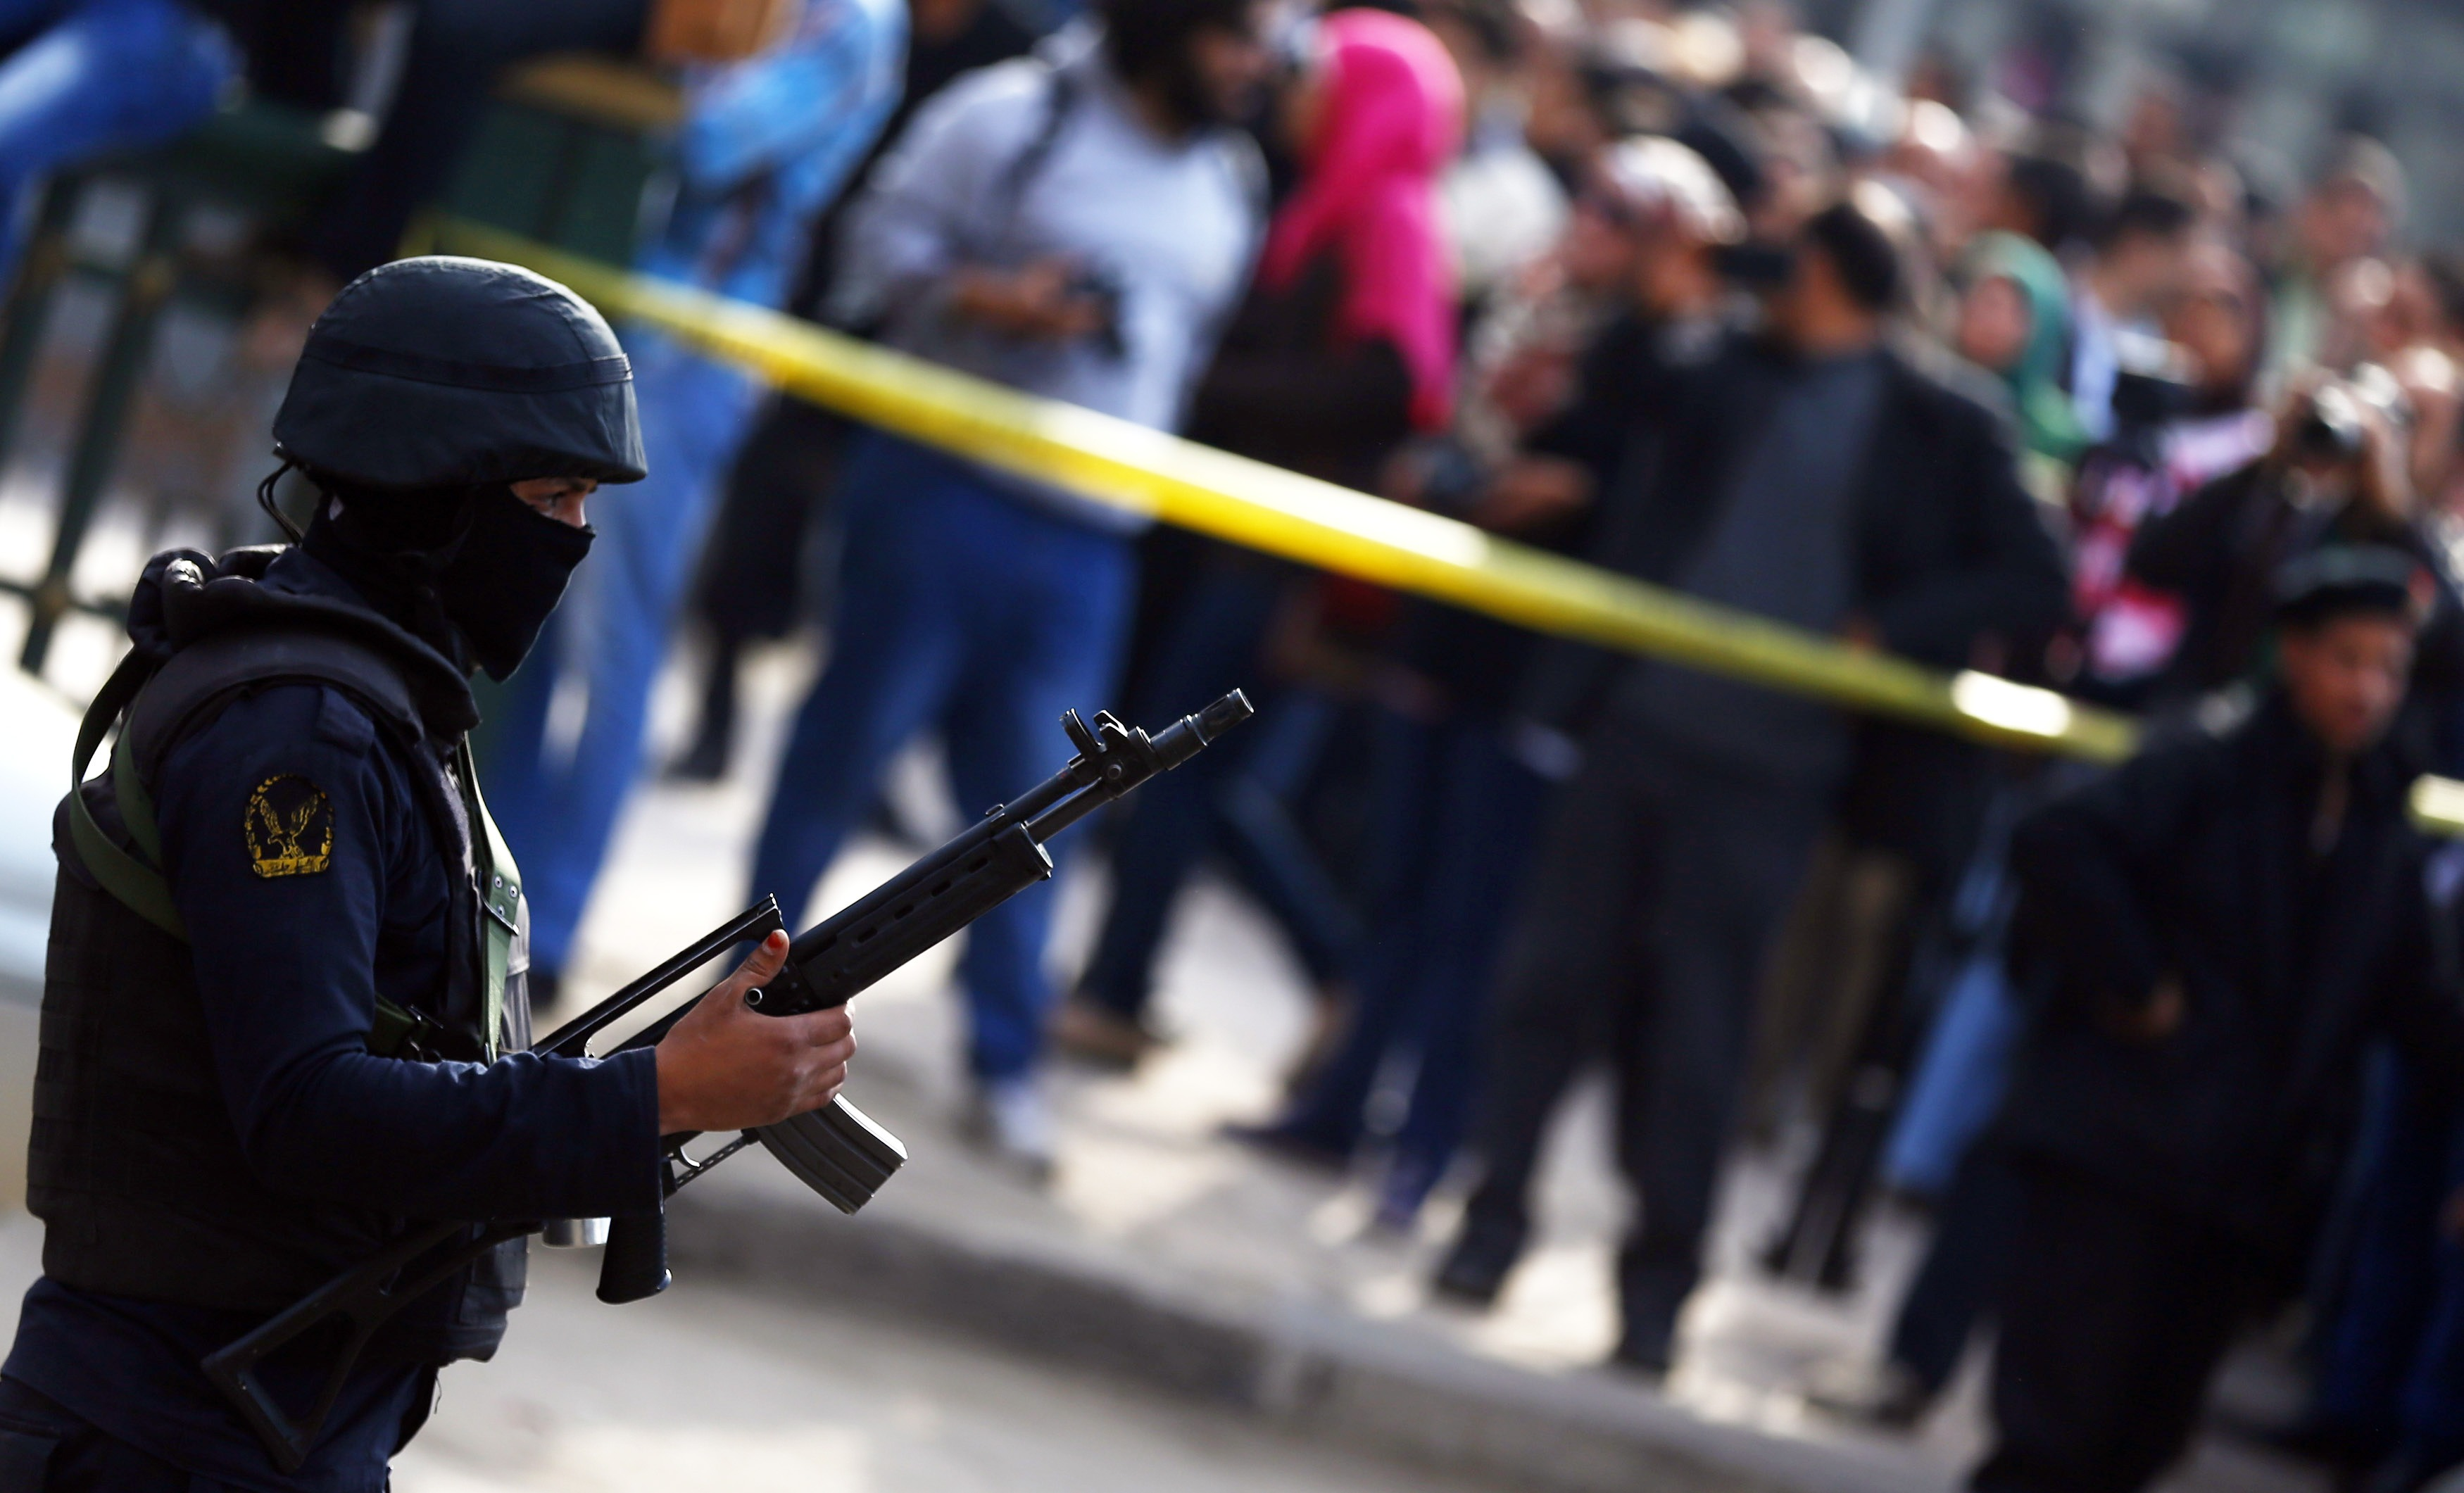 22 referred to Egyptian criminal court for 'terrorist acts' - state agency